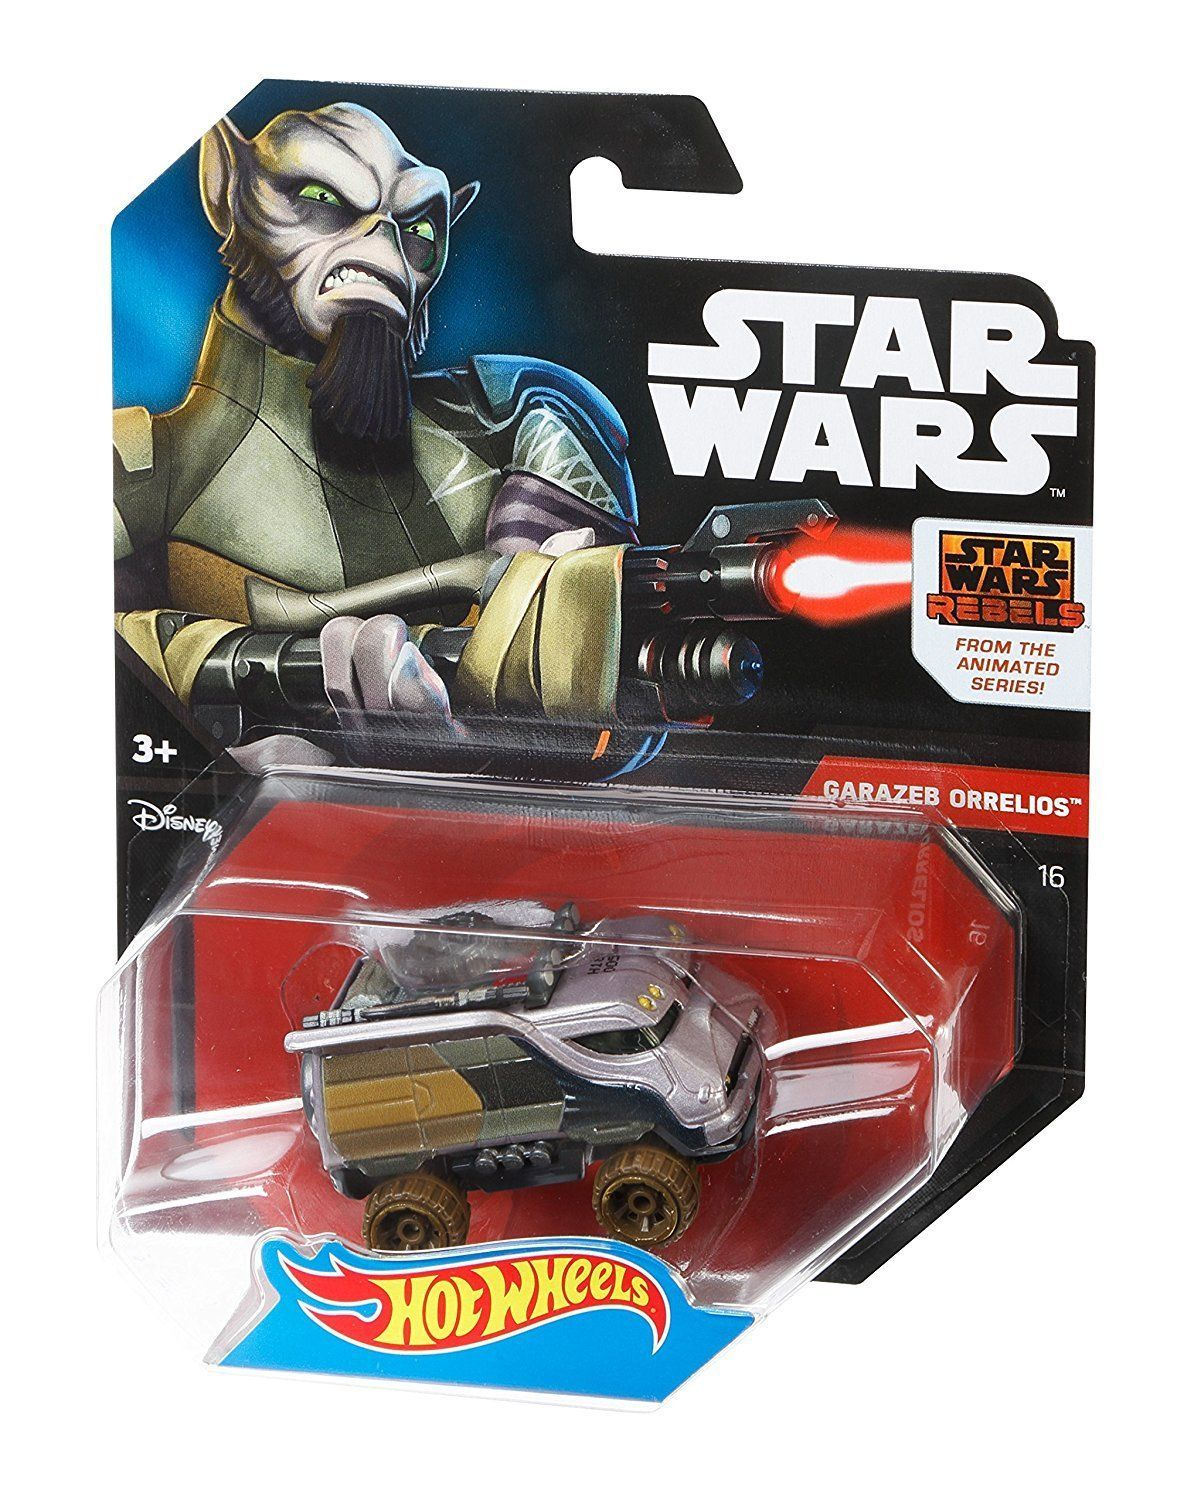 Hot Wheels Star Wars Character Car Star Wars Rebels GaraZeb Orrelios